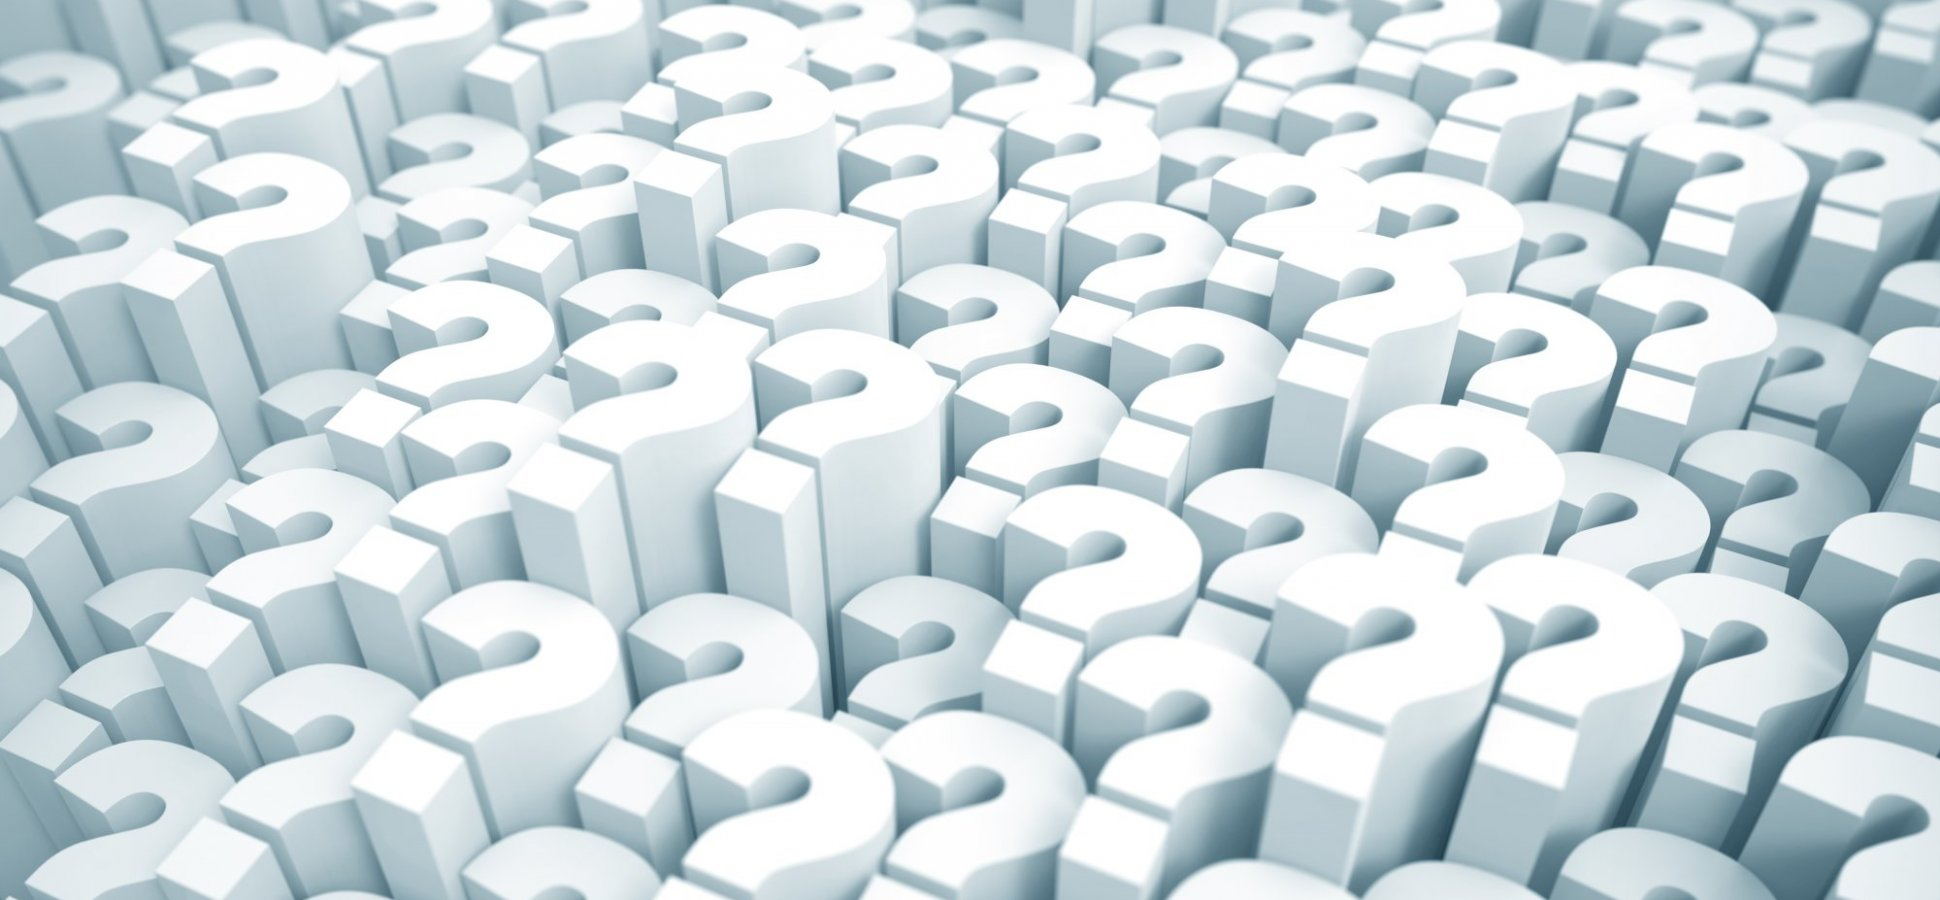 5 Powerfully Essential Questions Every Leader Should Always Ask Themselves (and Their Team)